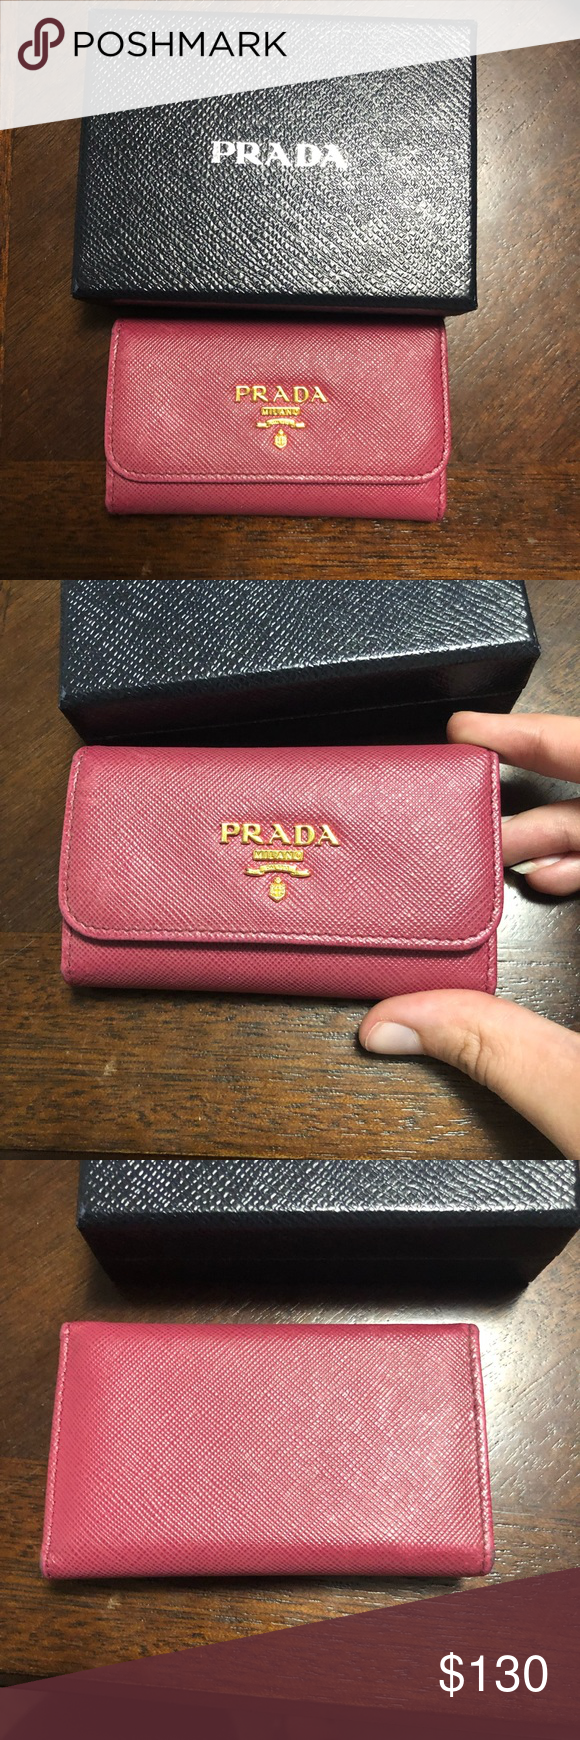 56fc87cd7524b1 FINAL PRICE Authentic Prada key holder Gorgeous pink saffiano leather key  holder by prada. This